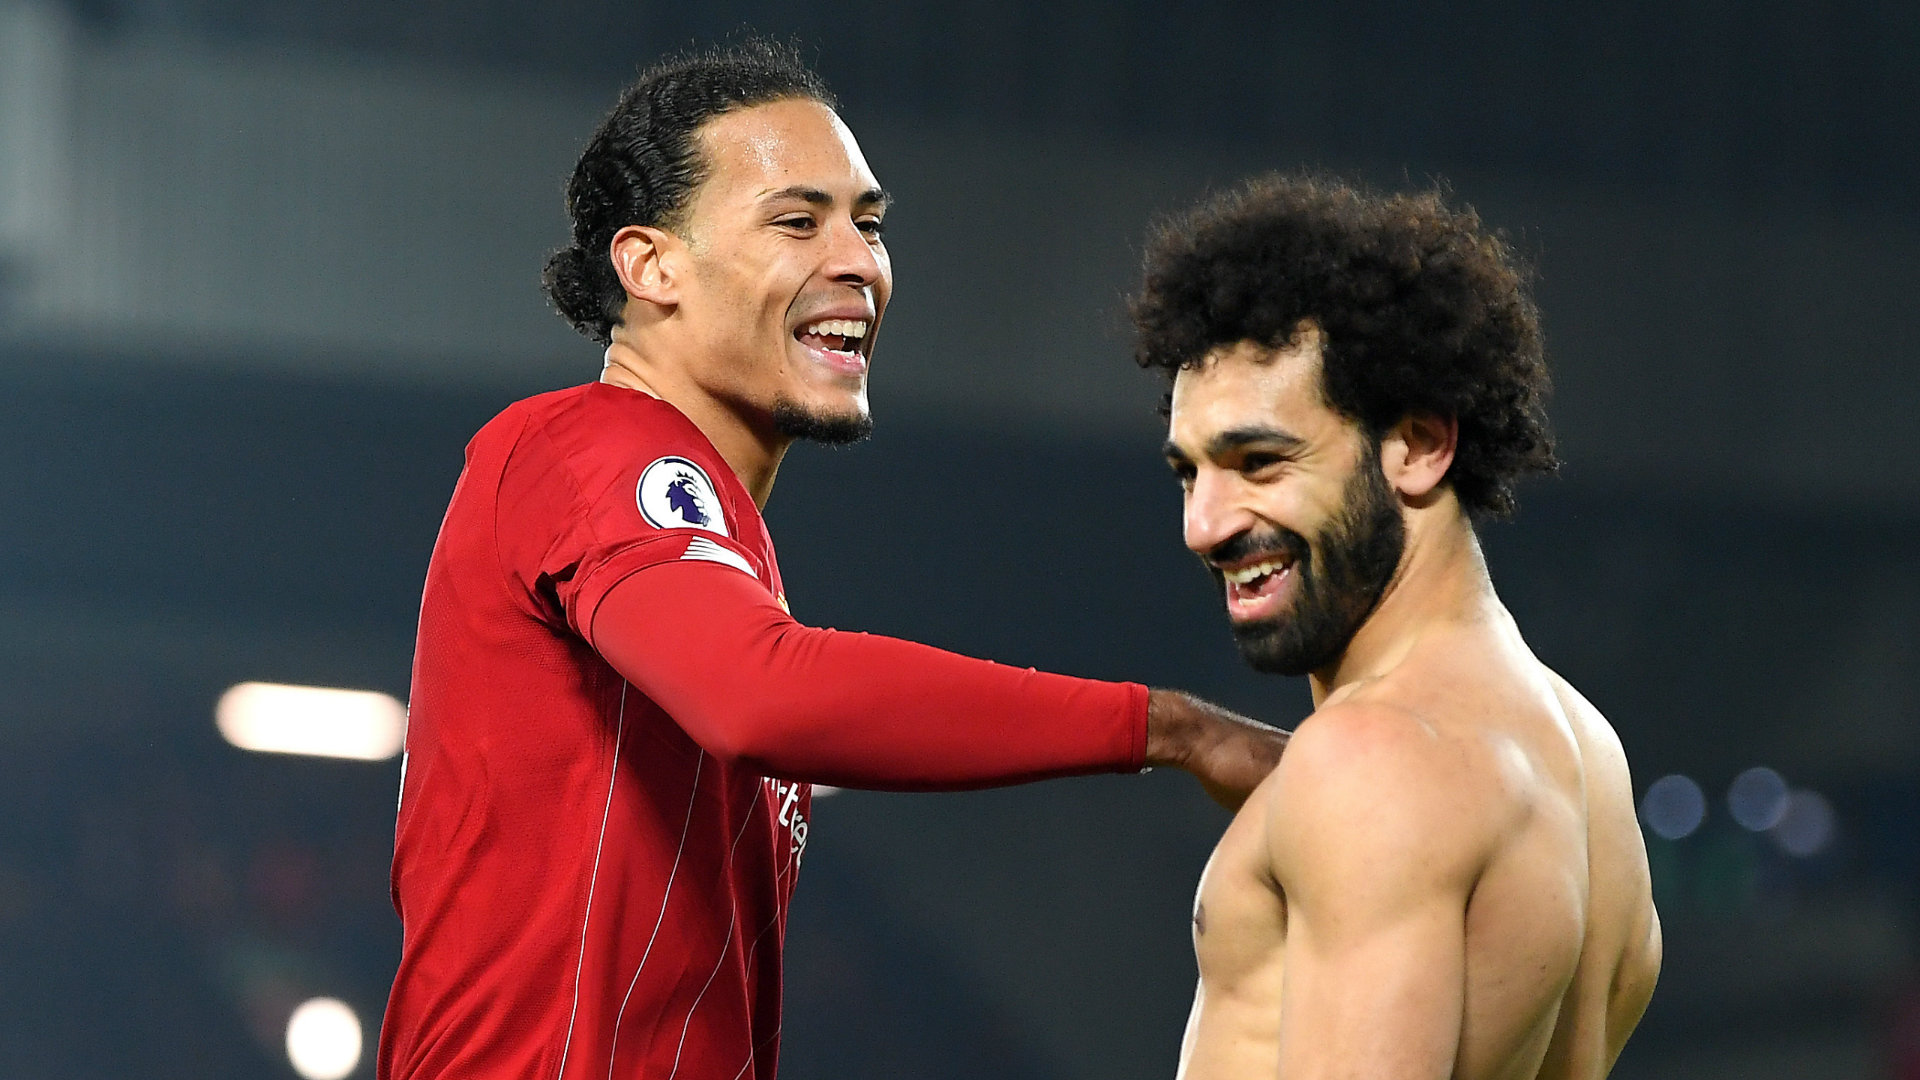 Premier League win can take some Liverpool players to the next level - Van Dijk